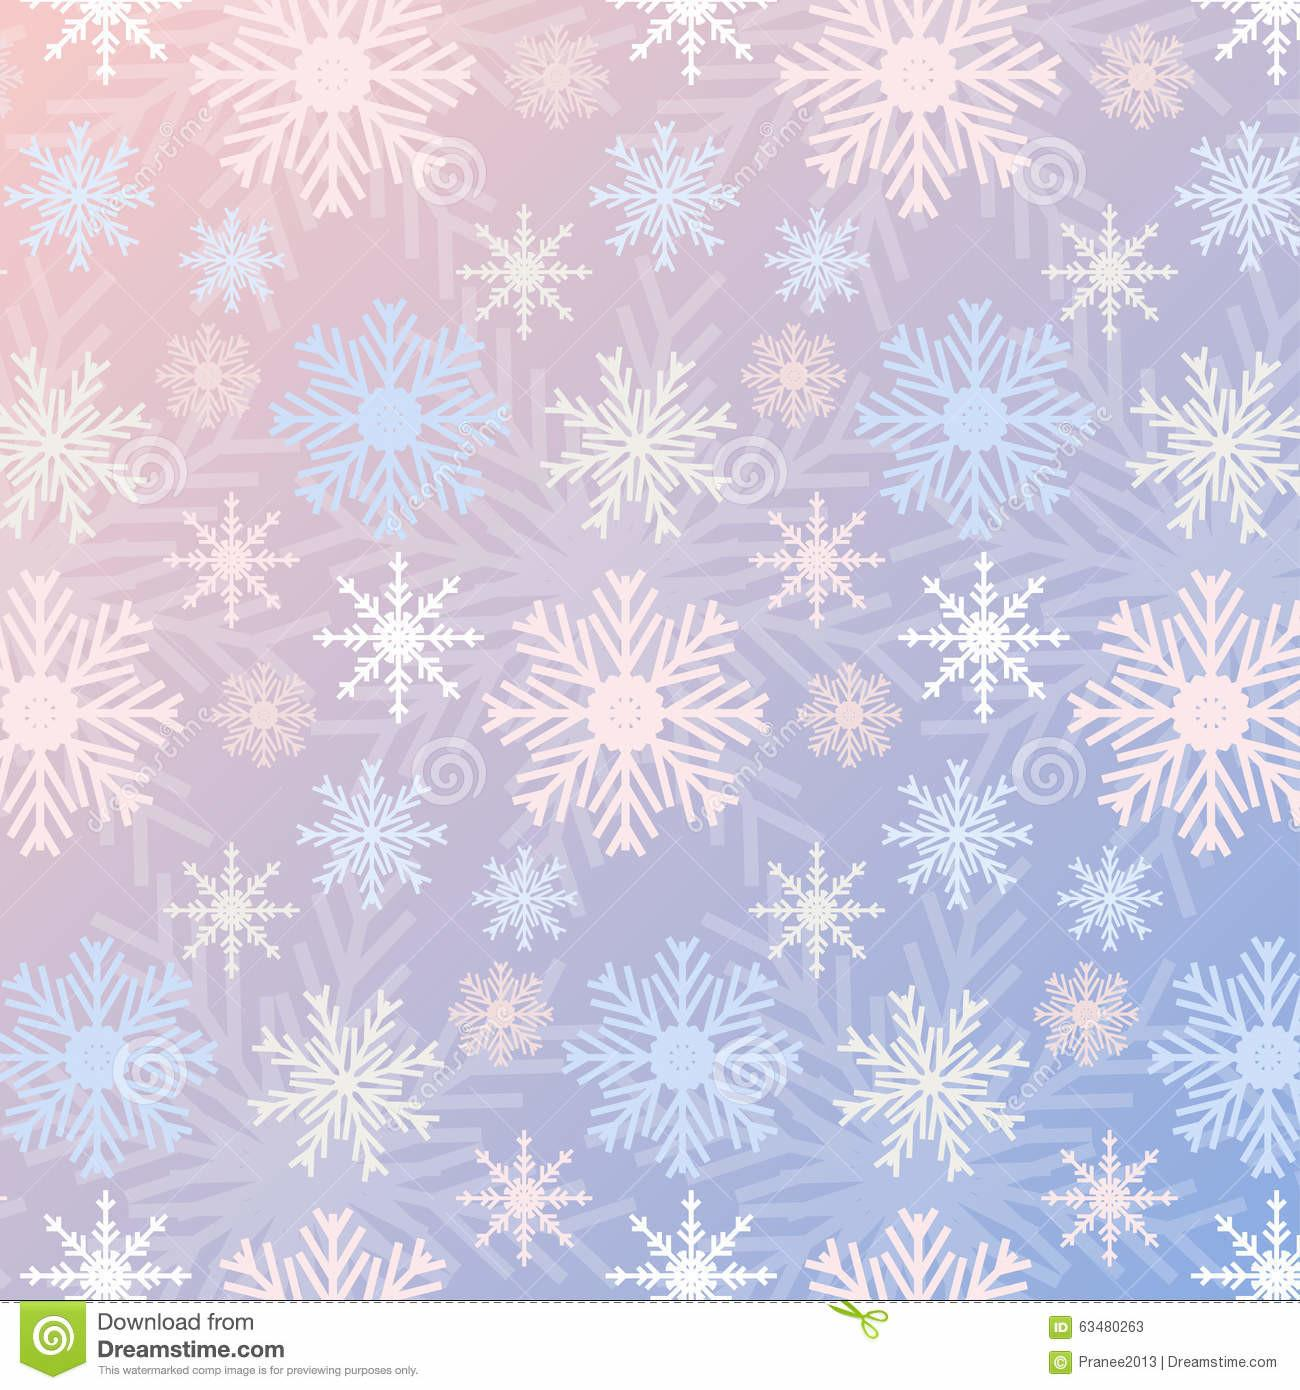 Snowflake Seamless Pattern Gradient Rose Quartz